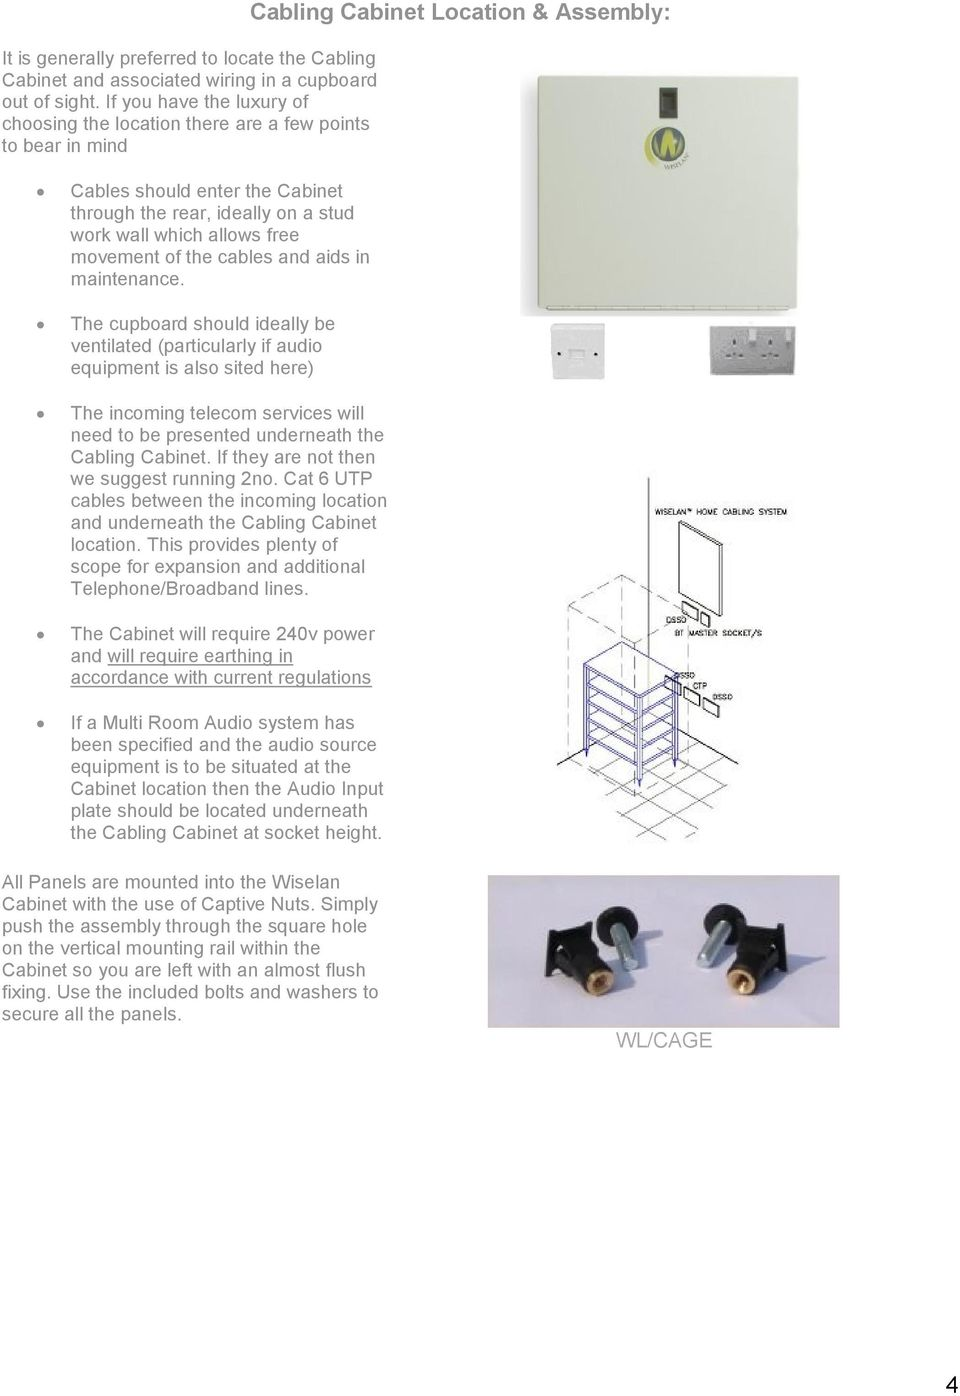 Home Cabling Installation Guide Pdf Wall Mount Ethernet Jack Wiring Diagram Also Neat Patch Cable Which Allows Free Movement Of The Cables And Aids In Maintenance